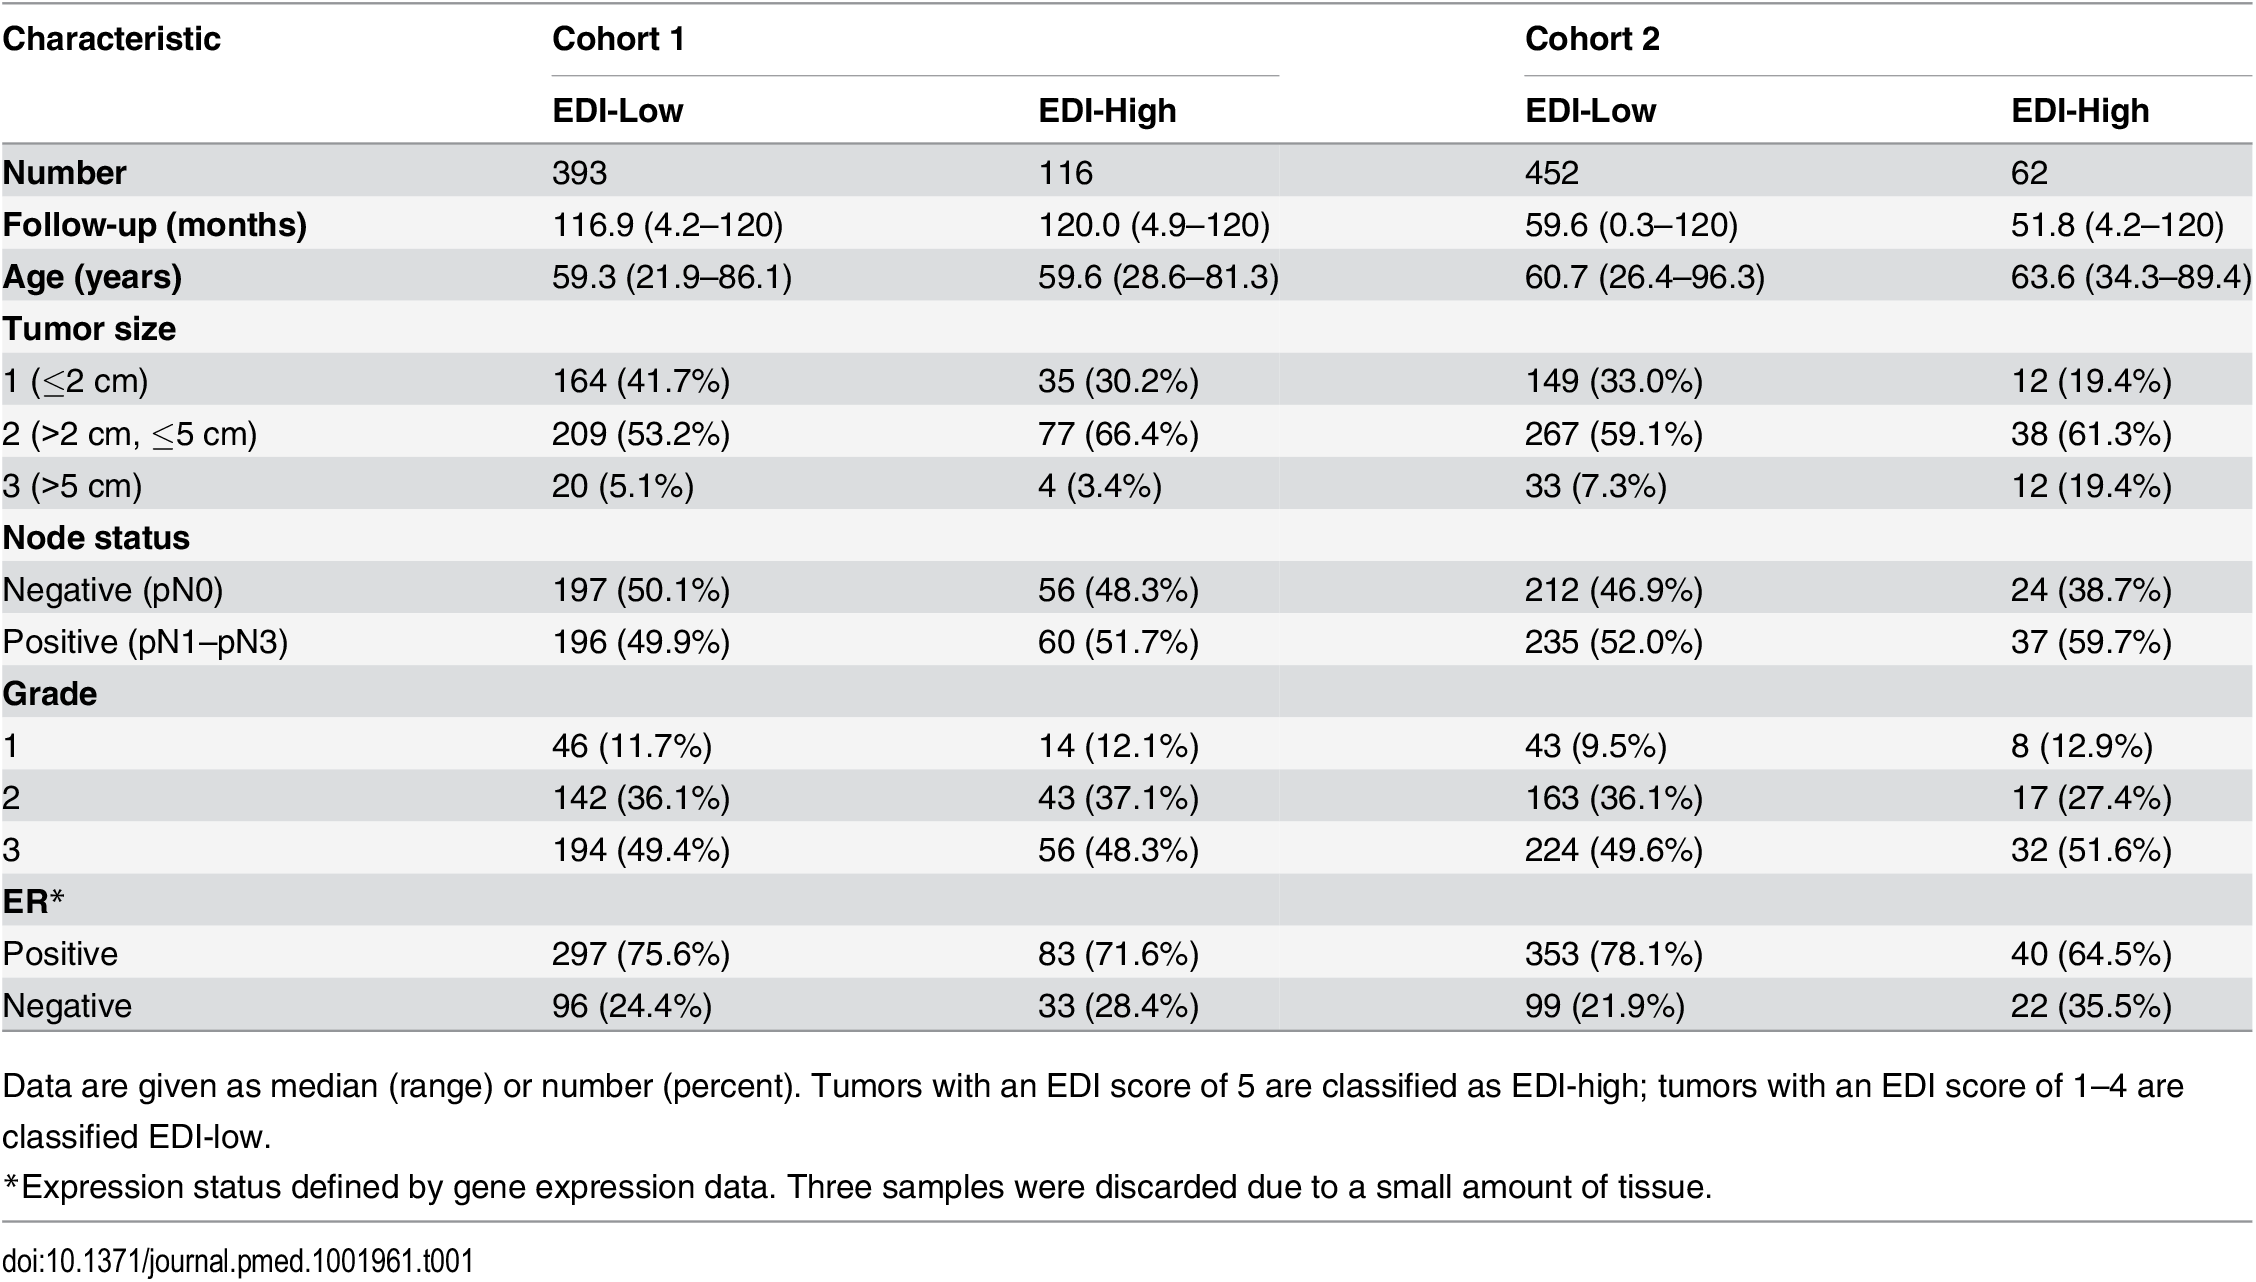 Distribution of EDI scores and clinicopathological characteristics in breast tumors.